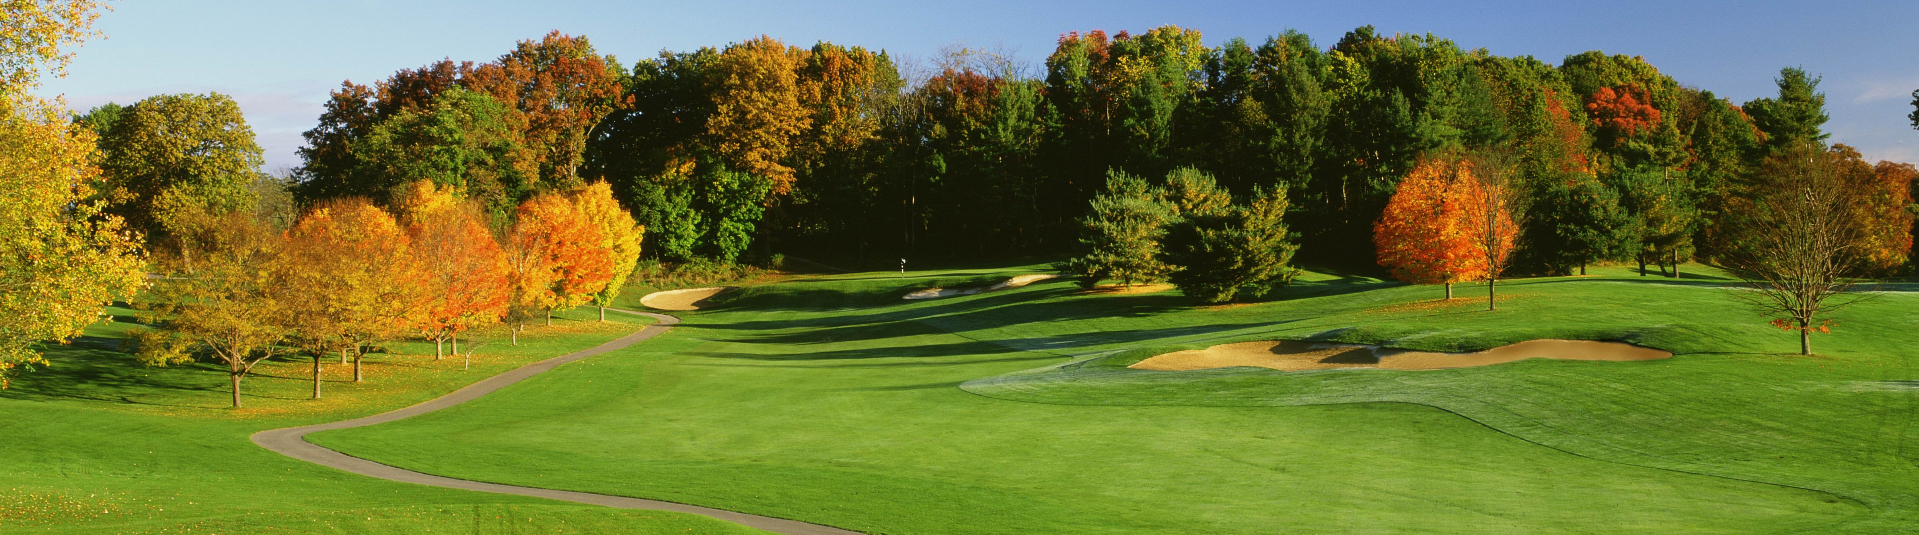 The greens look lush on a sunny day at Casperkill Golf Club in Poughkeepsie